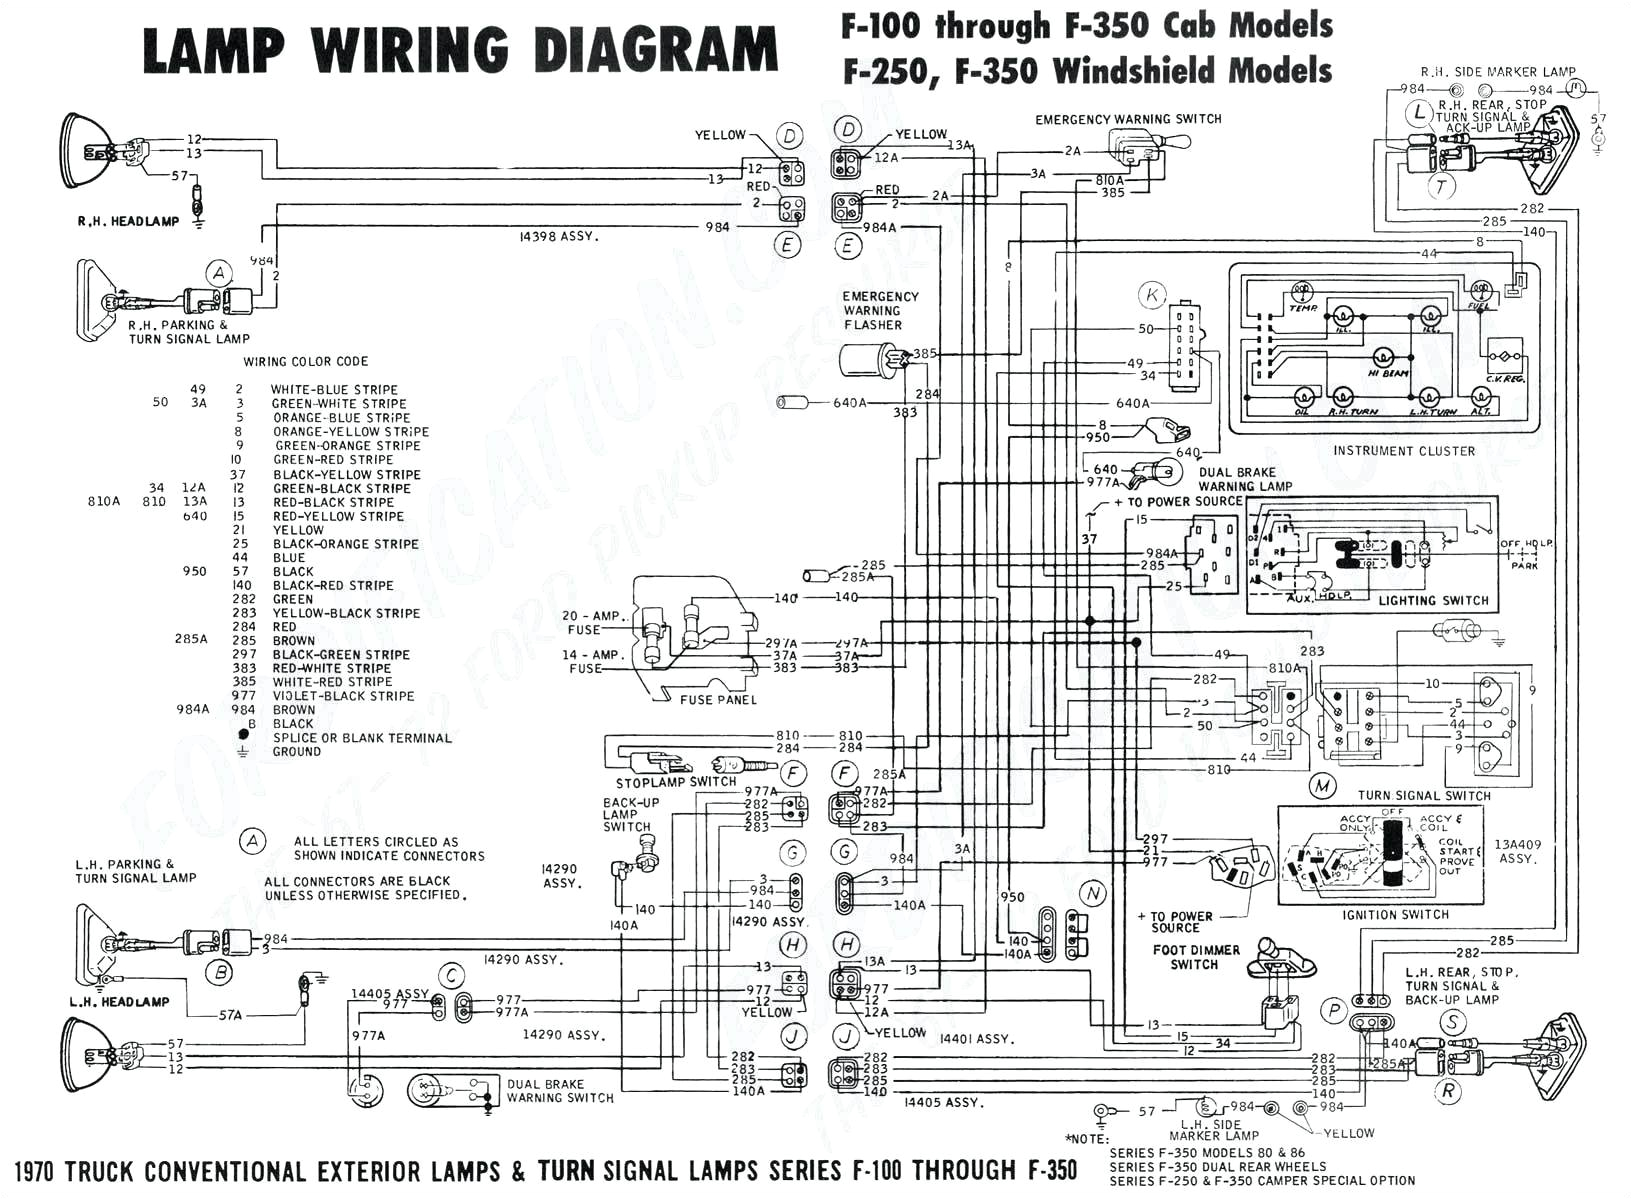 ford f250 starter solenoid wiring diagram 1996 f150 trailer wiring diagram anything wiring diagrams u2022 rh johnparkinson me 96 f150 wiring diagram 12c jpg